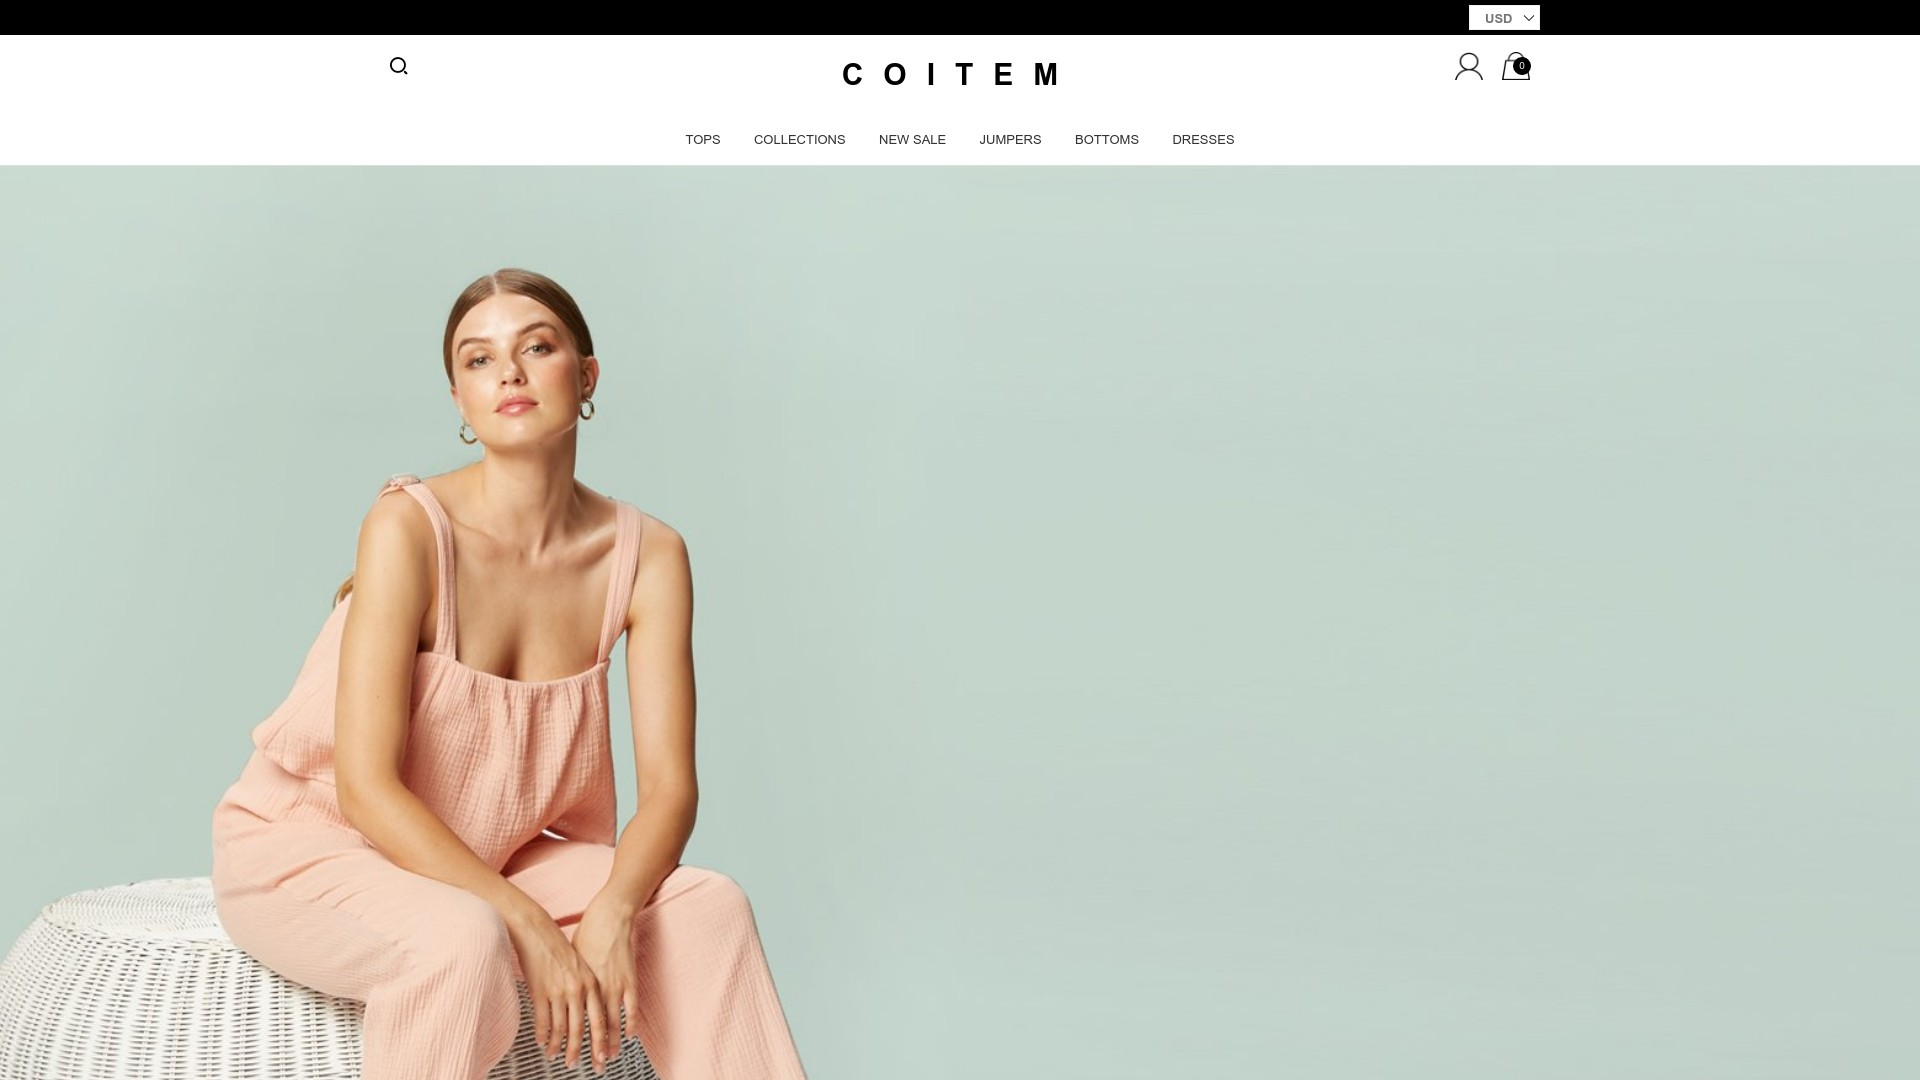 Is Coitem Com a Scam? Review of the Online Store